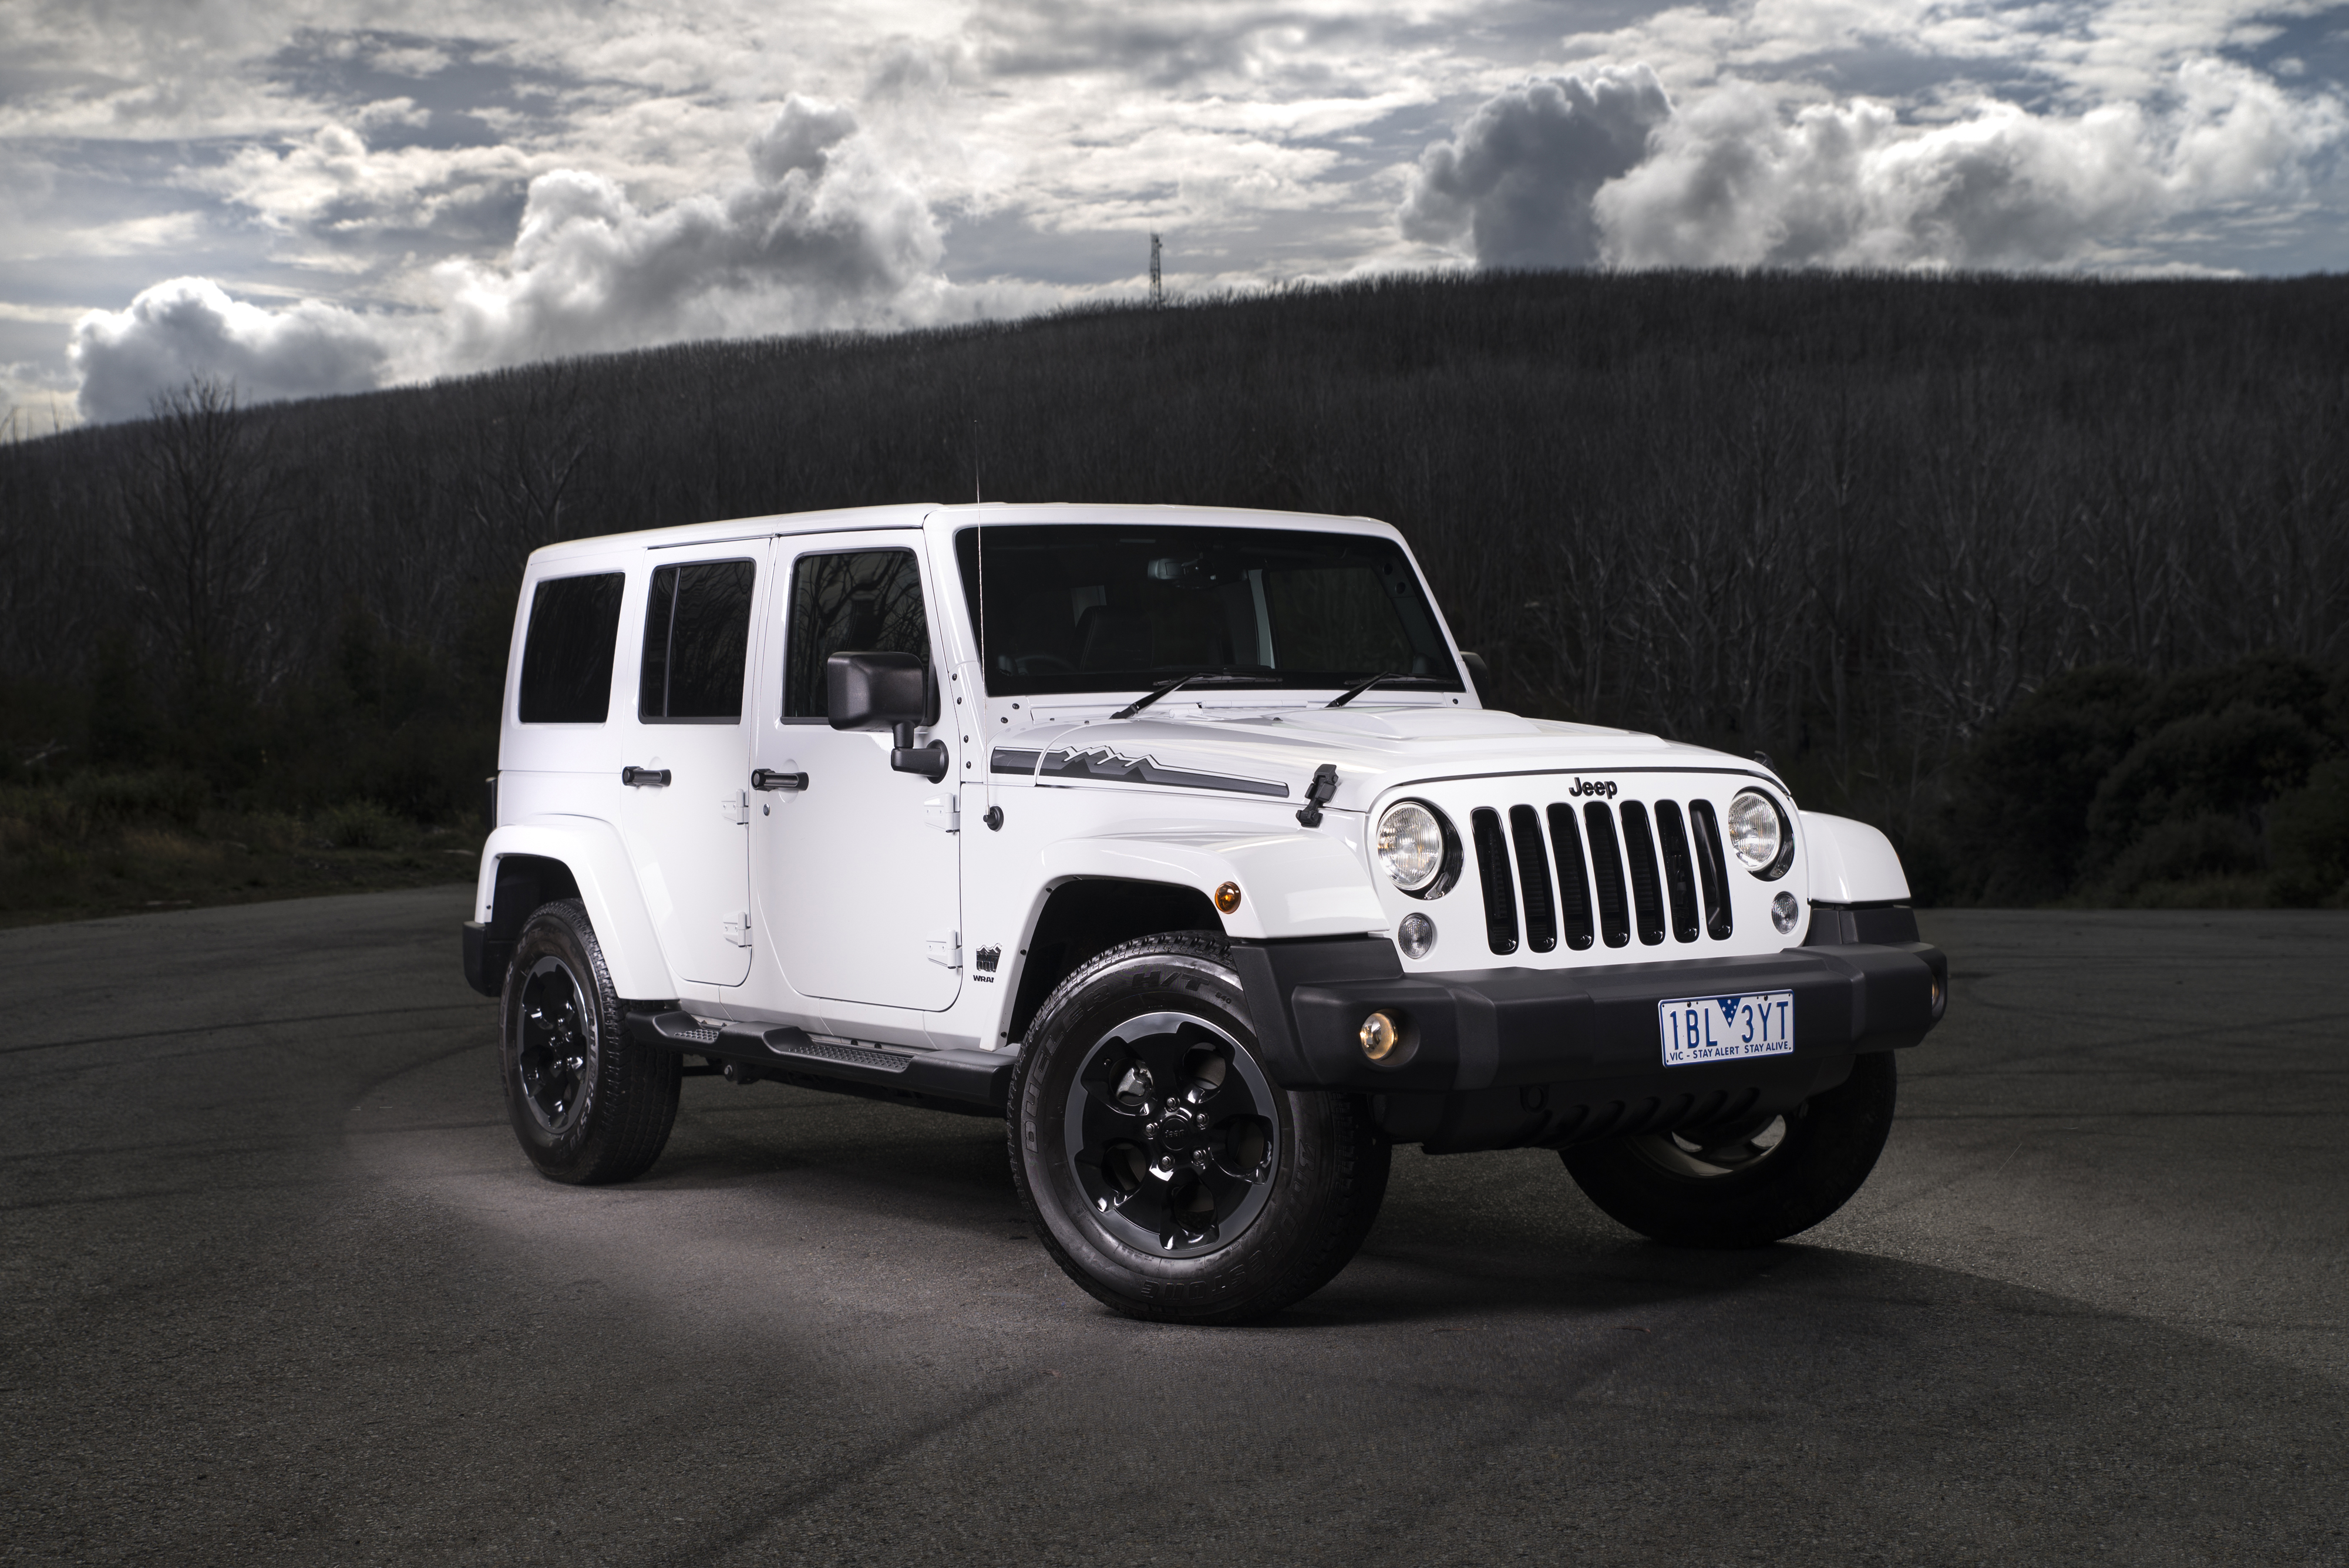 news 838 jeep wranglers recalled for airbag fix. Black Bedroom Furniture Sets. Home Design Ideas